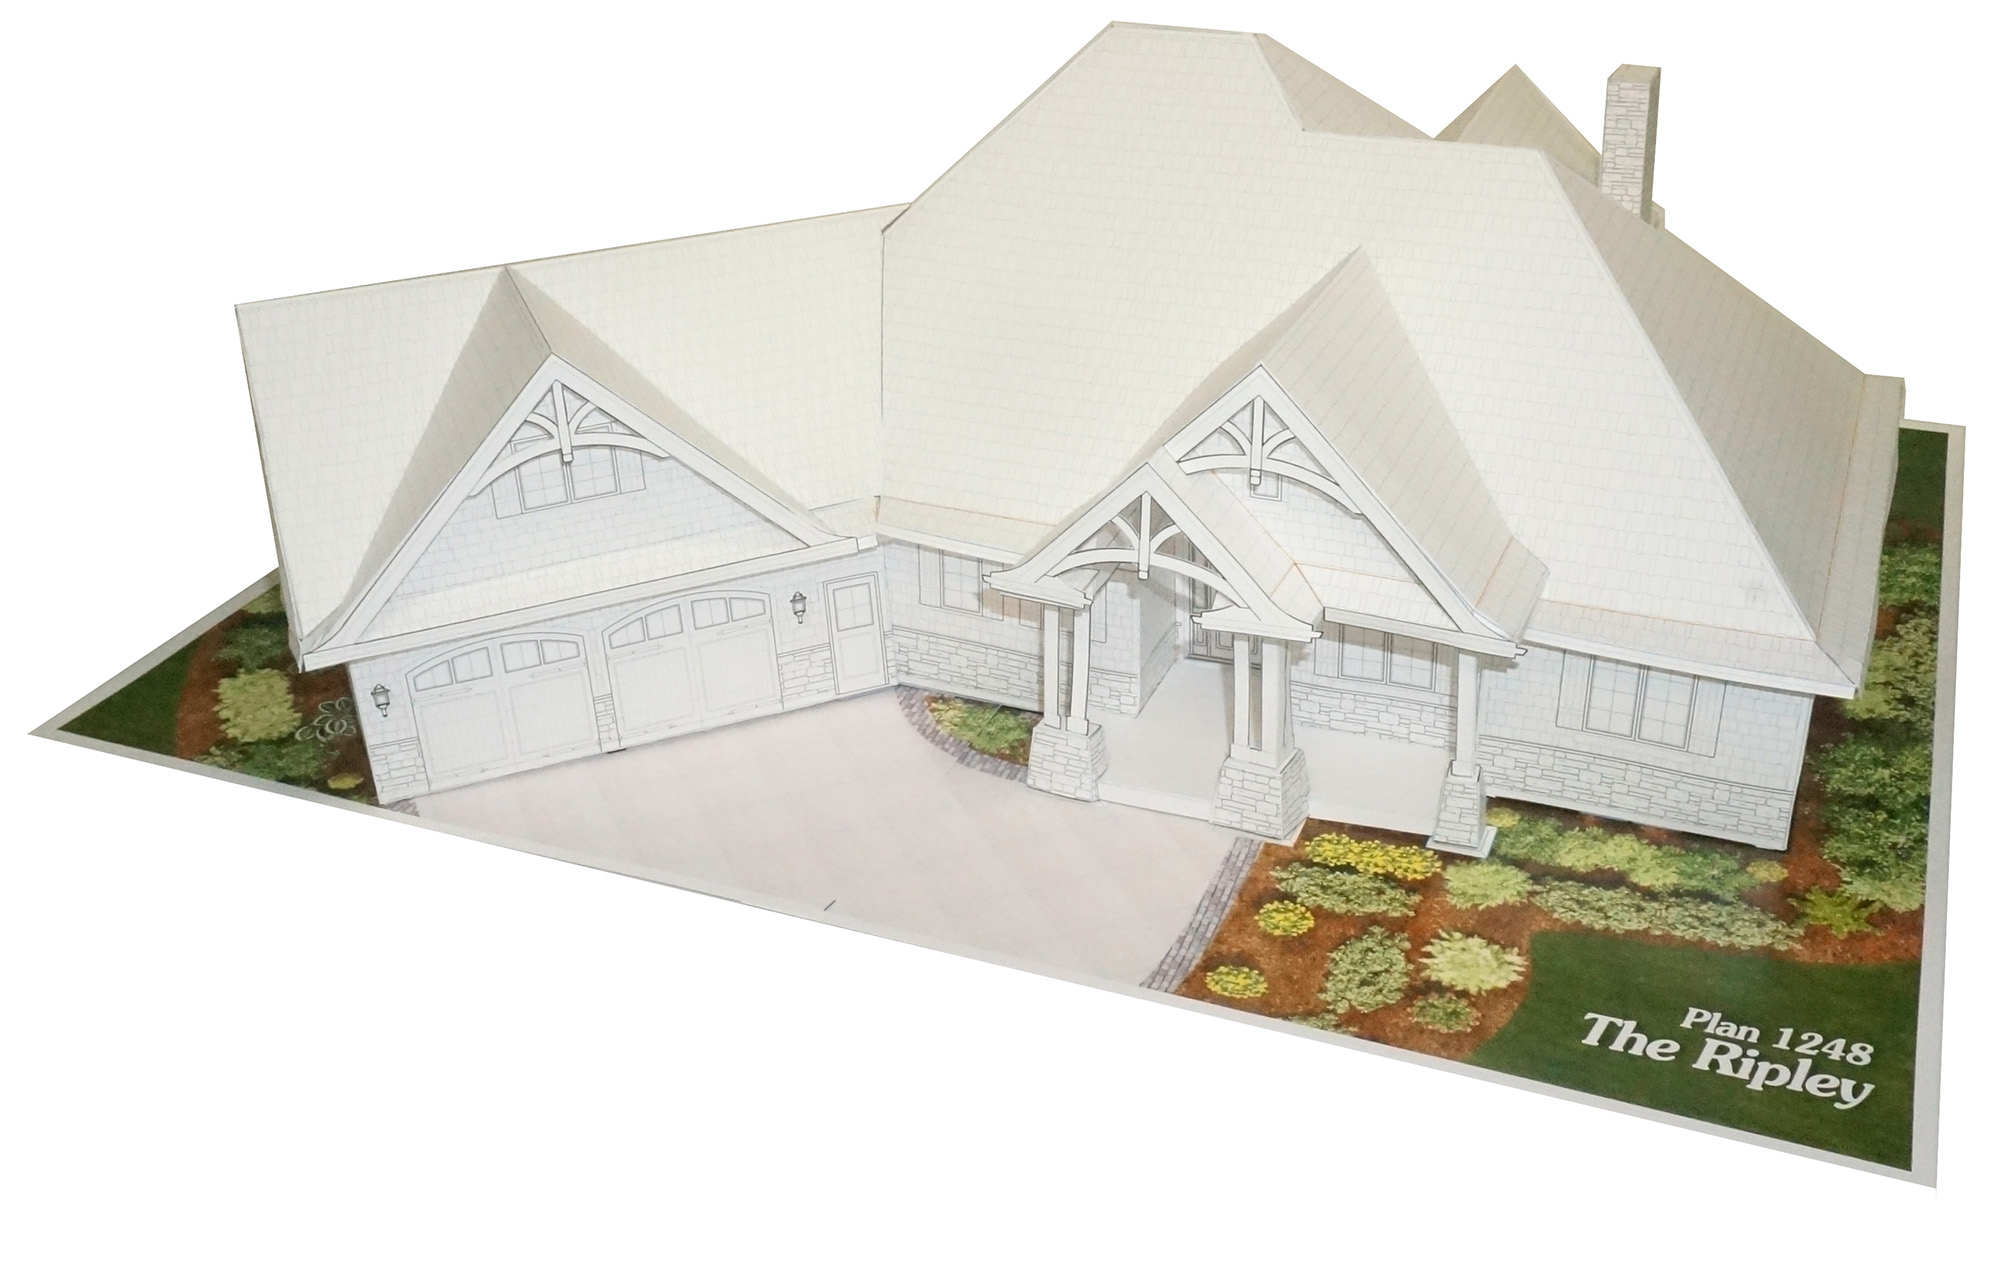 Architectural Model Kits Top Portland Home Designer Expands Into Toys And Games